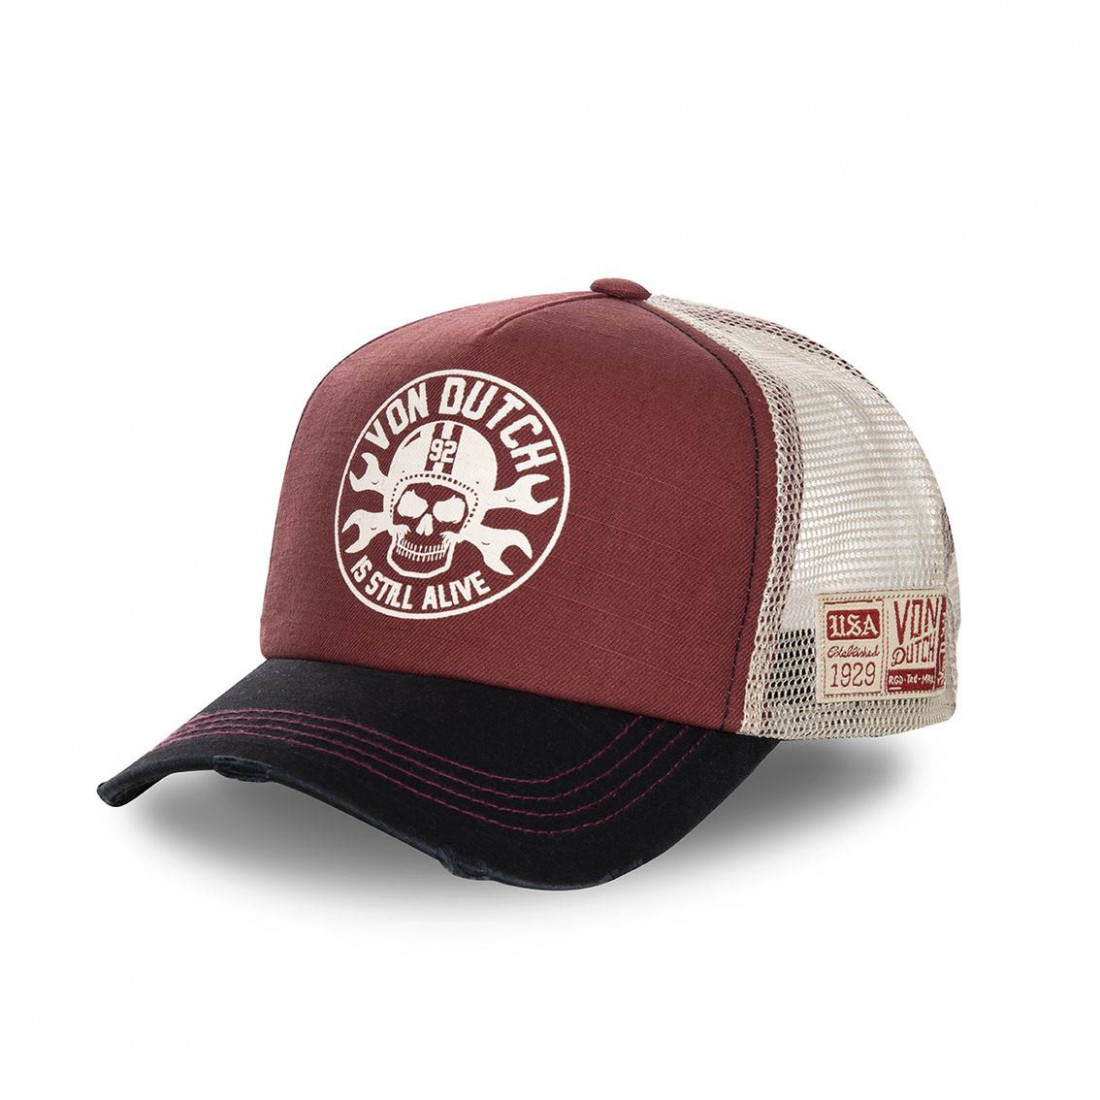 Casquette trucker Von Dutch Rags Rouge Bordeaux